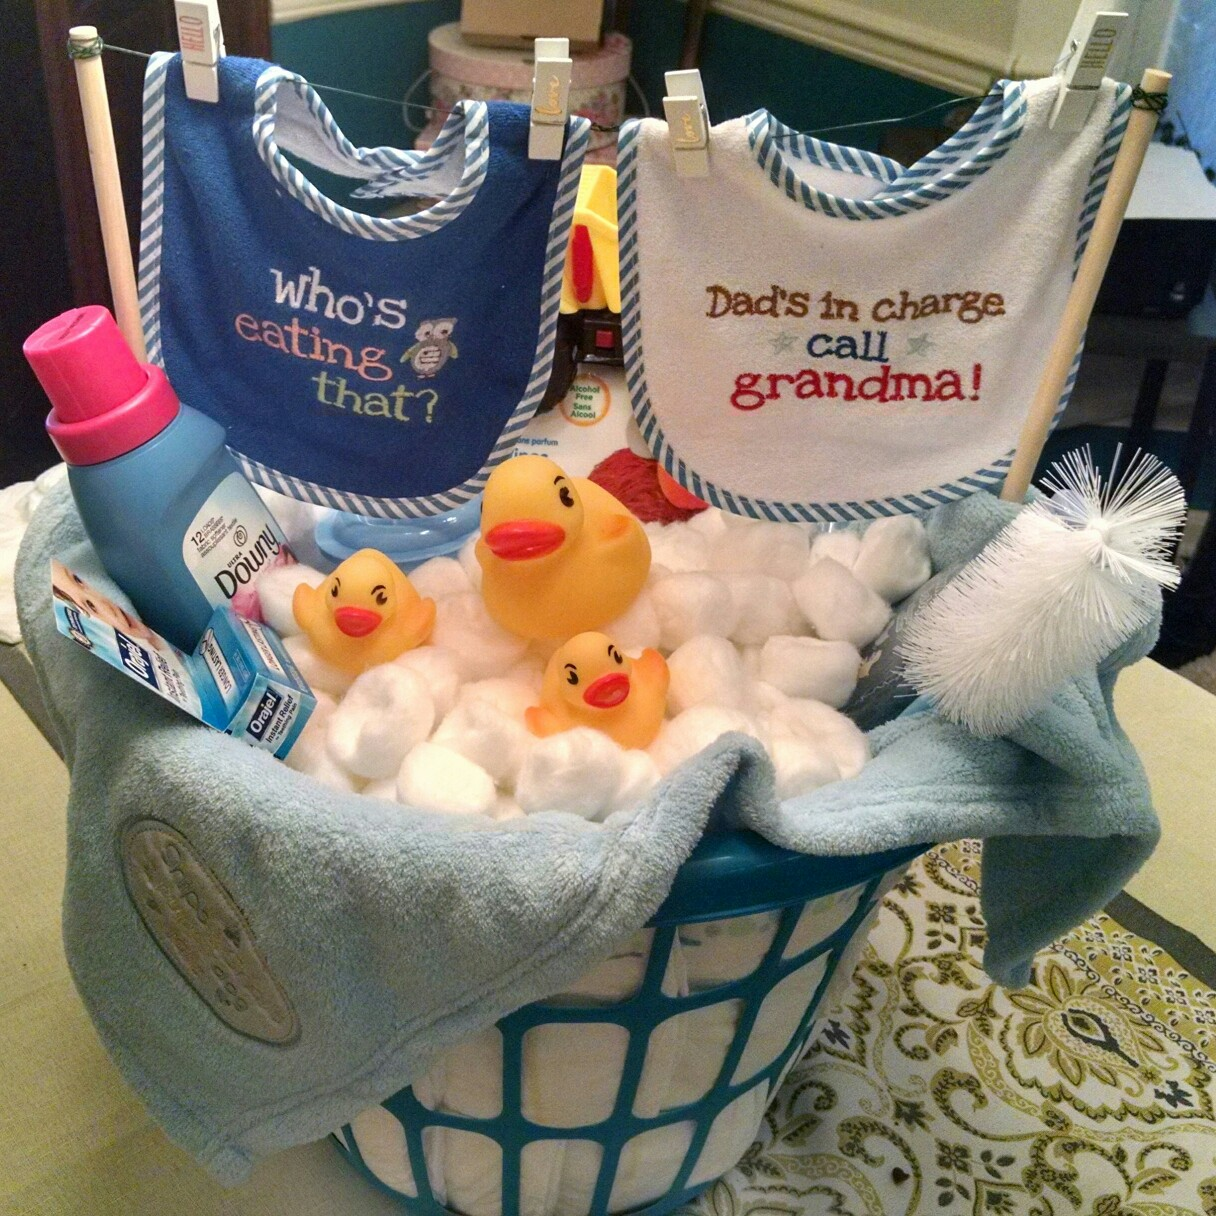 Baby Laundry Basket Gift Laundry Baskets Can Be Used For More Than Just Clothes